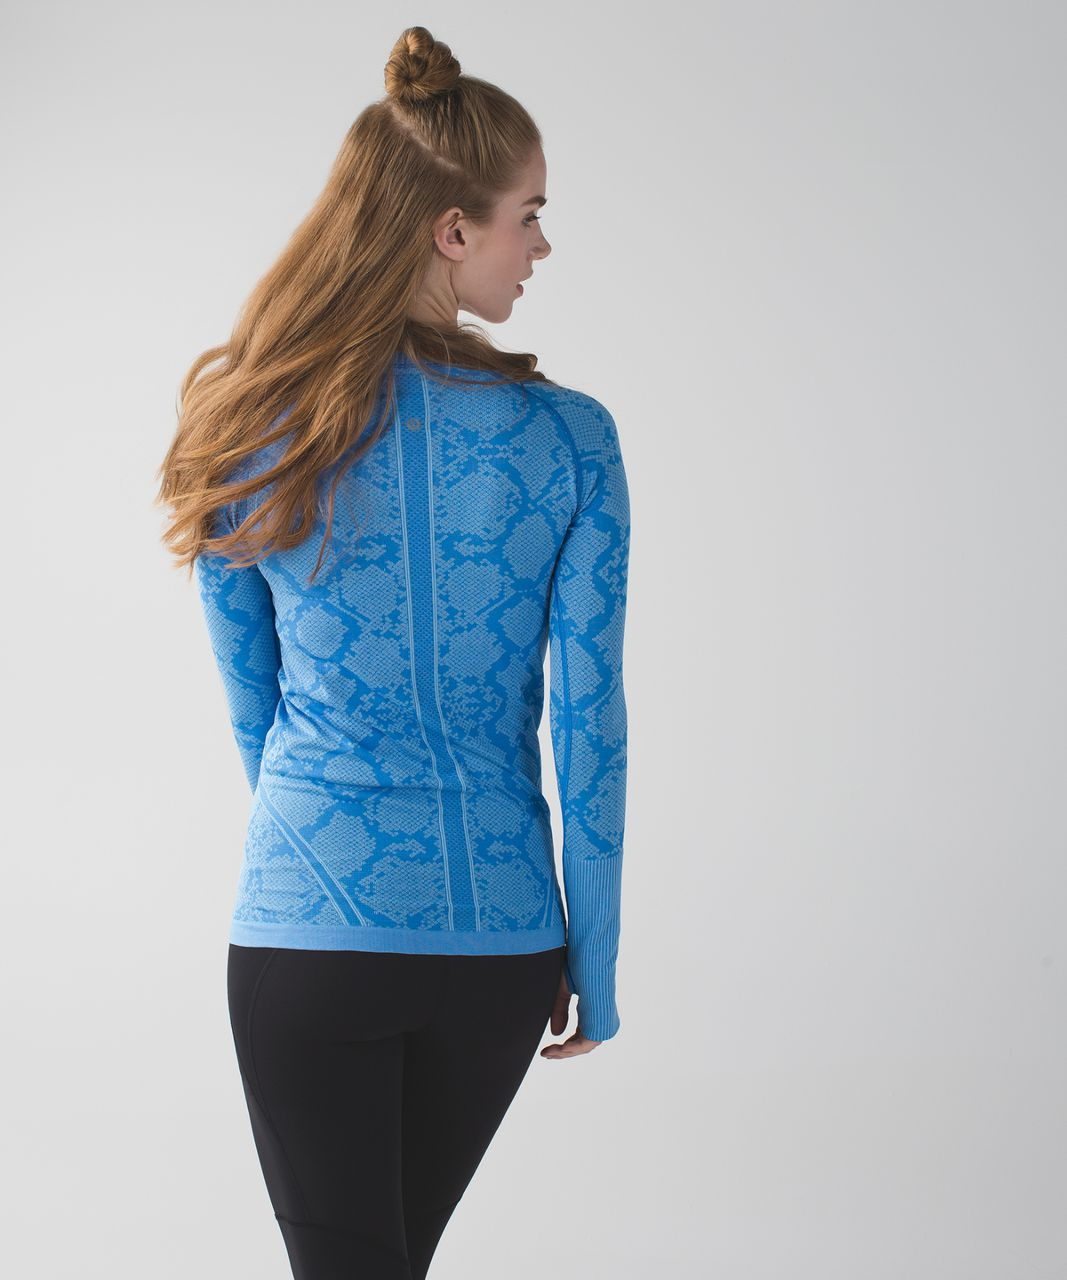 Lululemon Swiftly Tech Long Sleeve Crew - Heathered Pipe Dream Blue